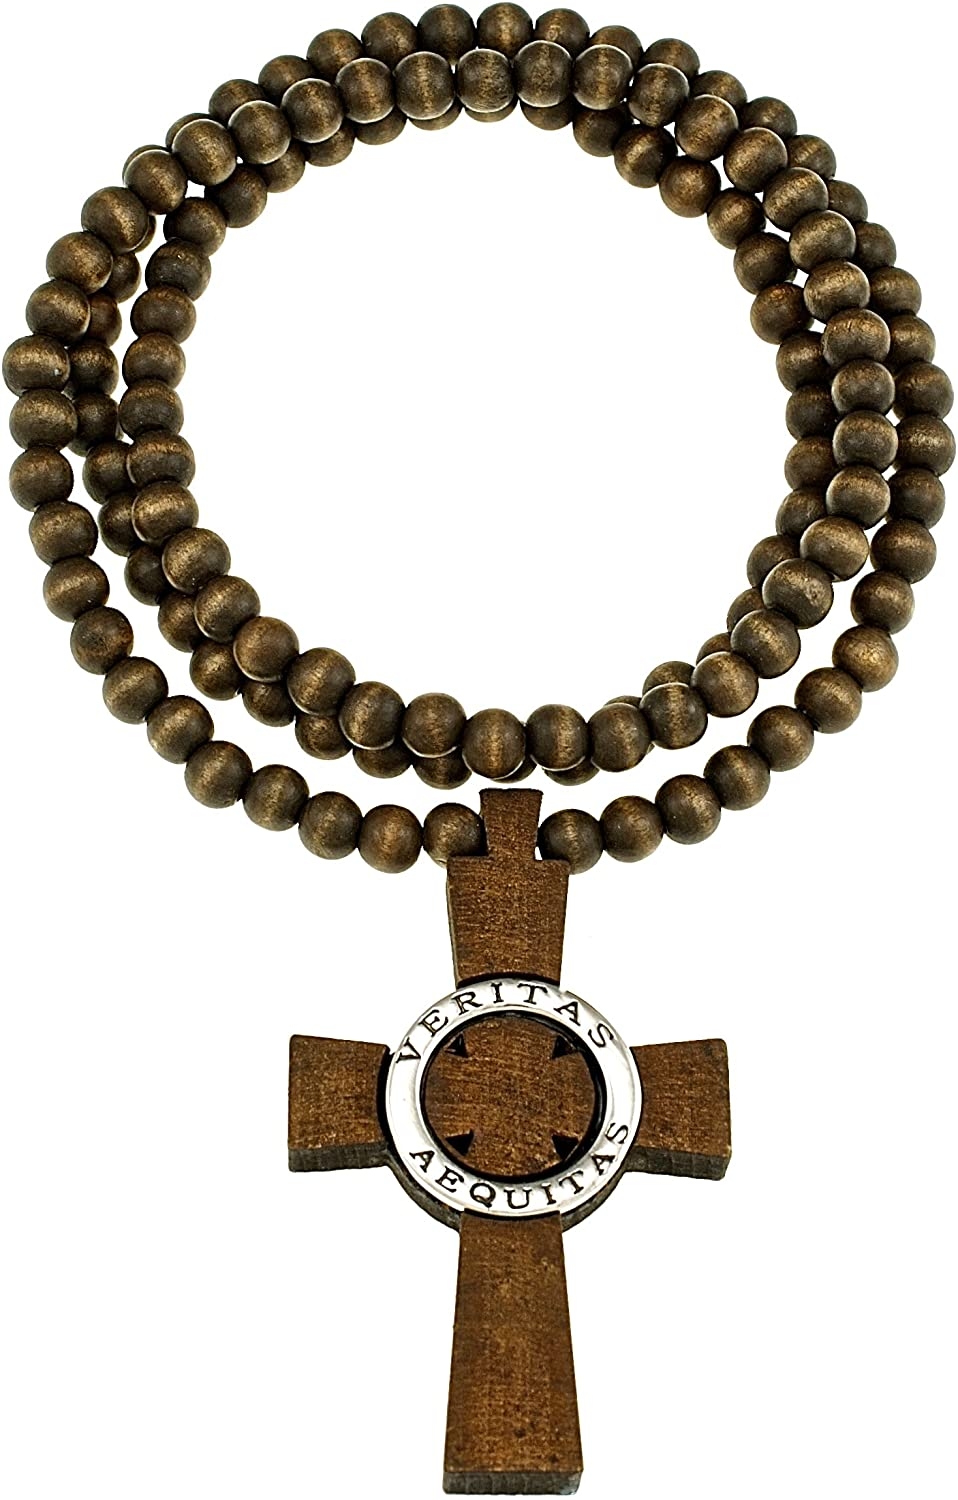 GWOOD Veritas Aequitas Wood Pendant Brown Color with 36 Inch Necklace